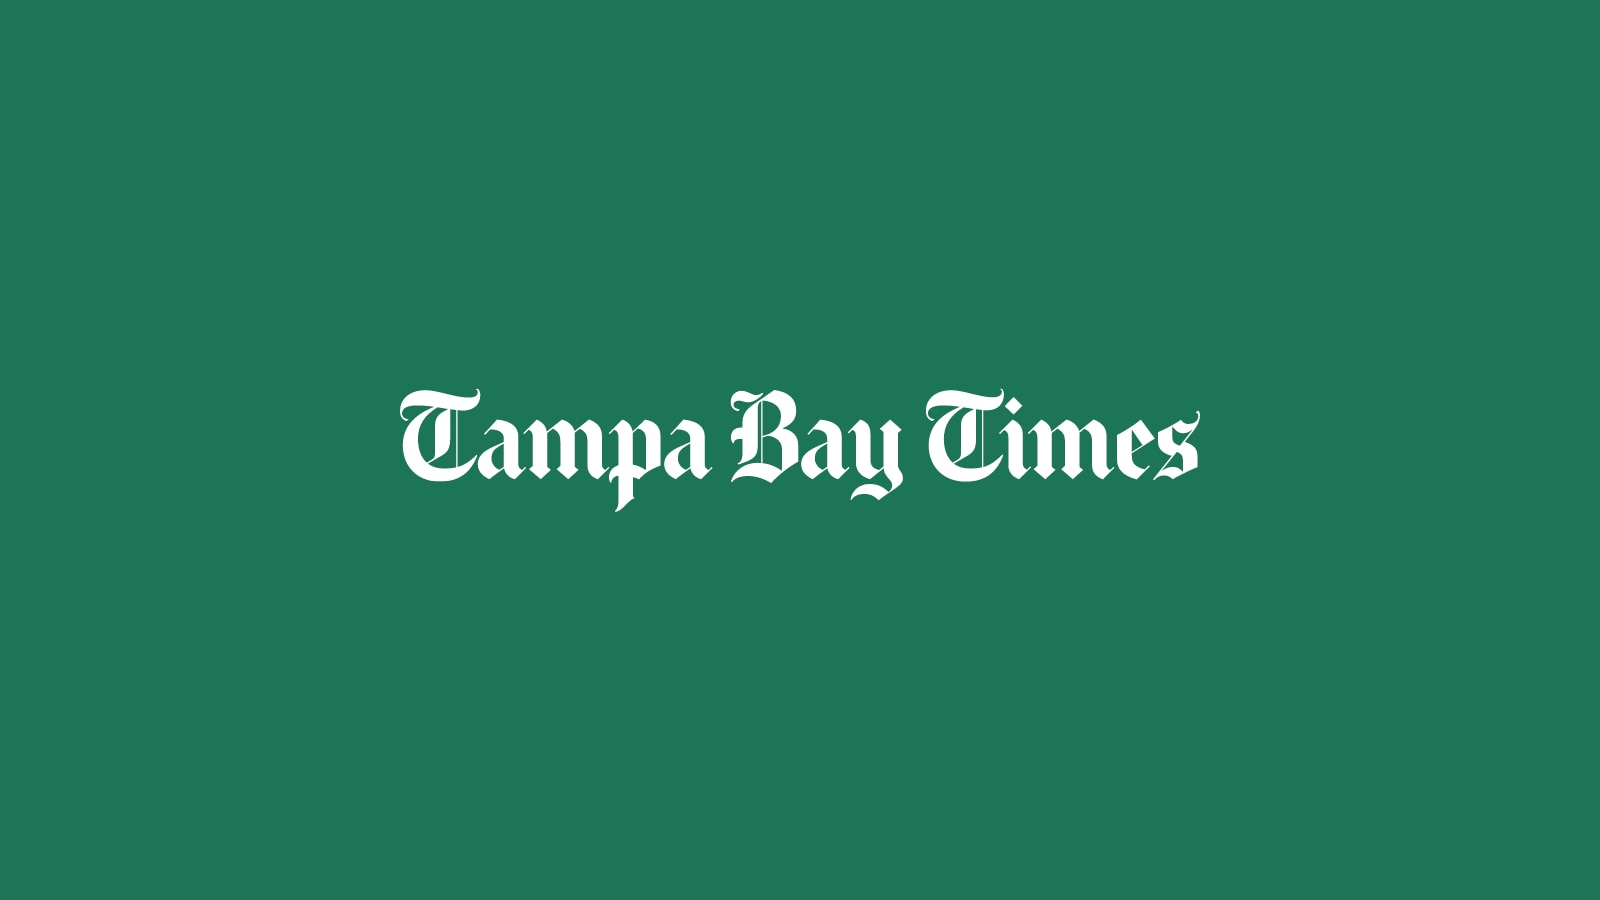 Friends Classmates Saw Boy S Dark Sid In 2002 he appealed his sentence. tampa bay times